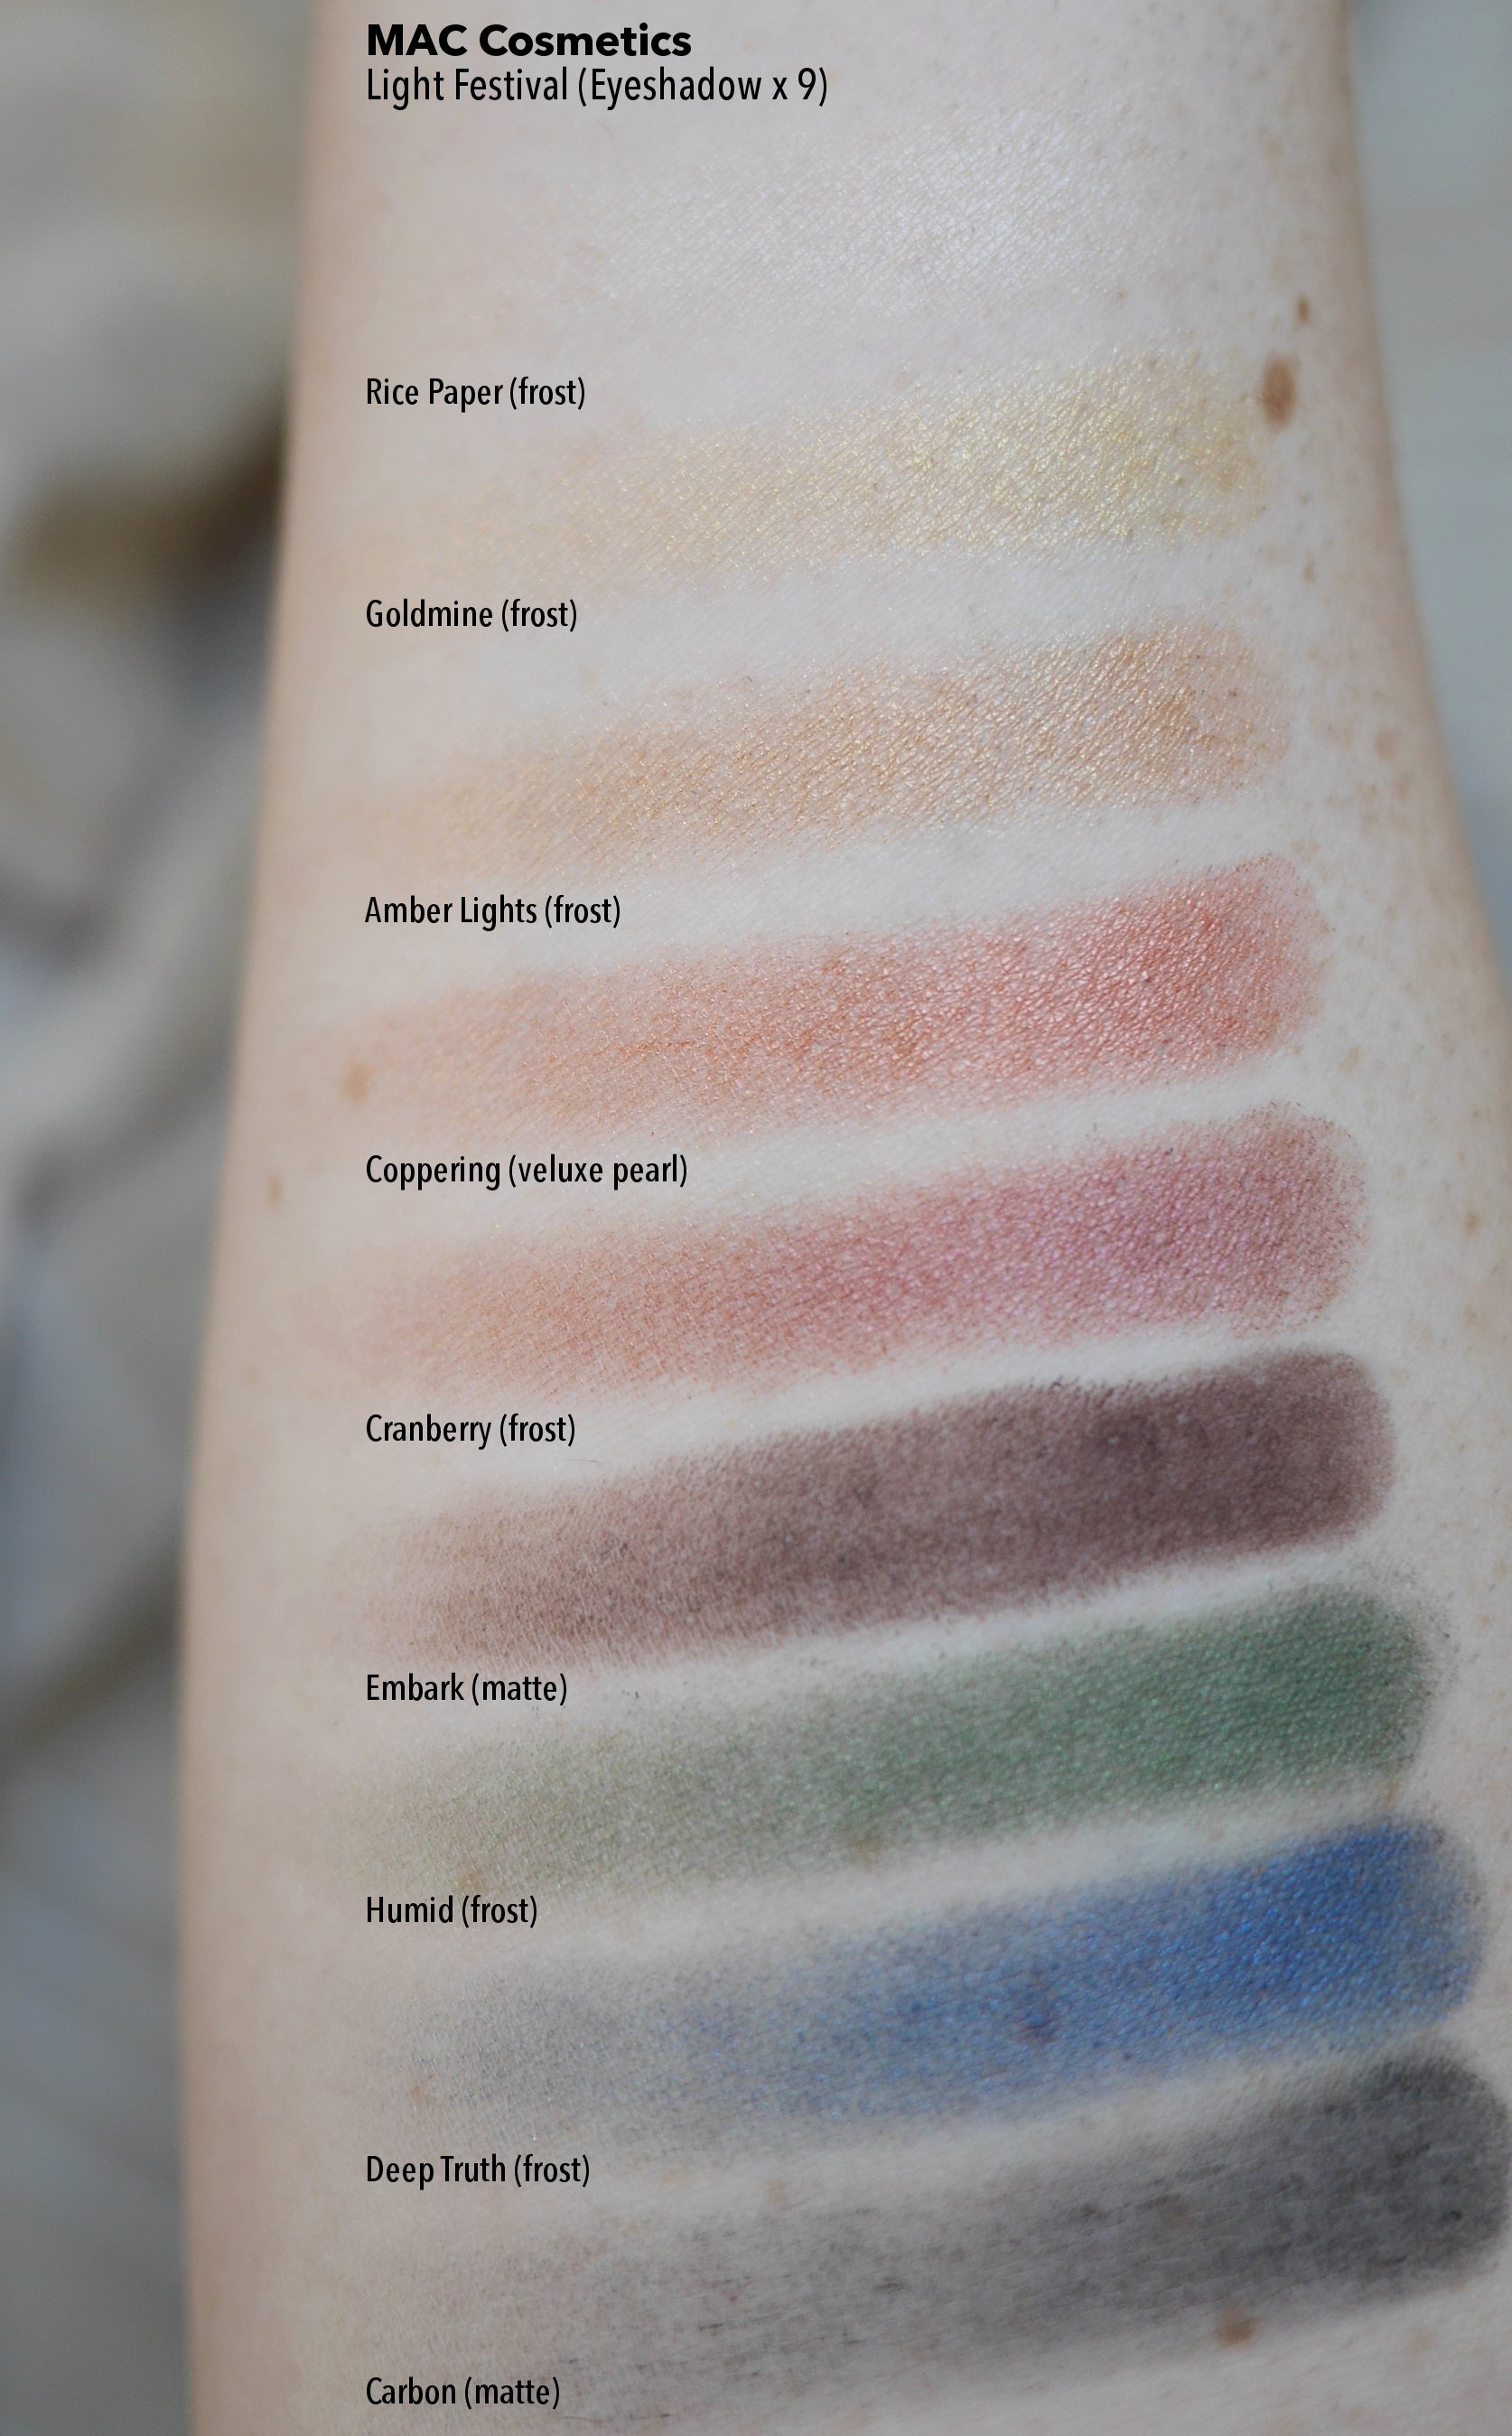 MAC Cosmetics Diwali Light Festival Eyeshadow x 9 palette review swatches